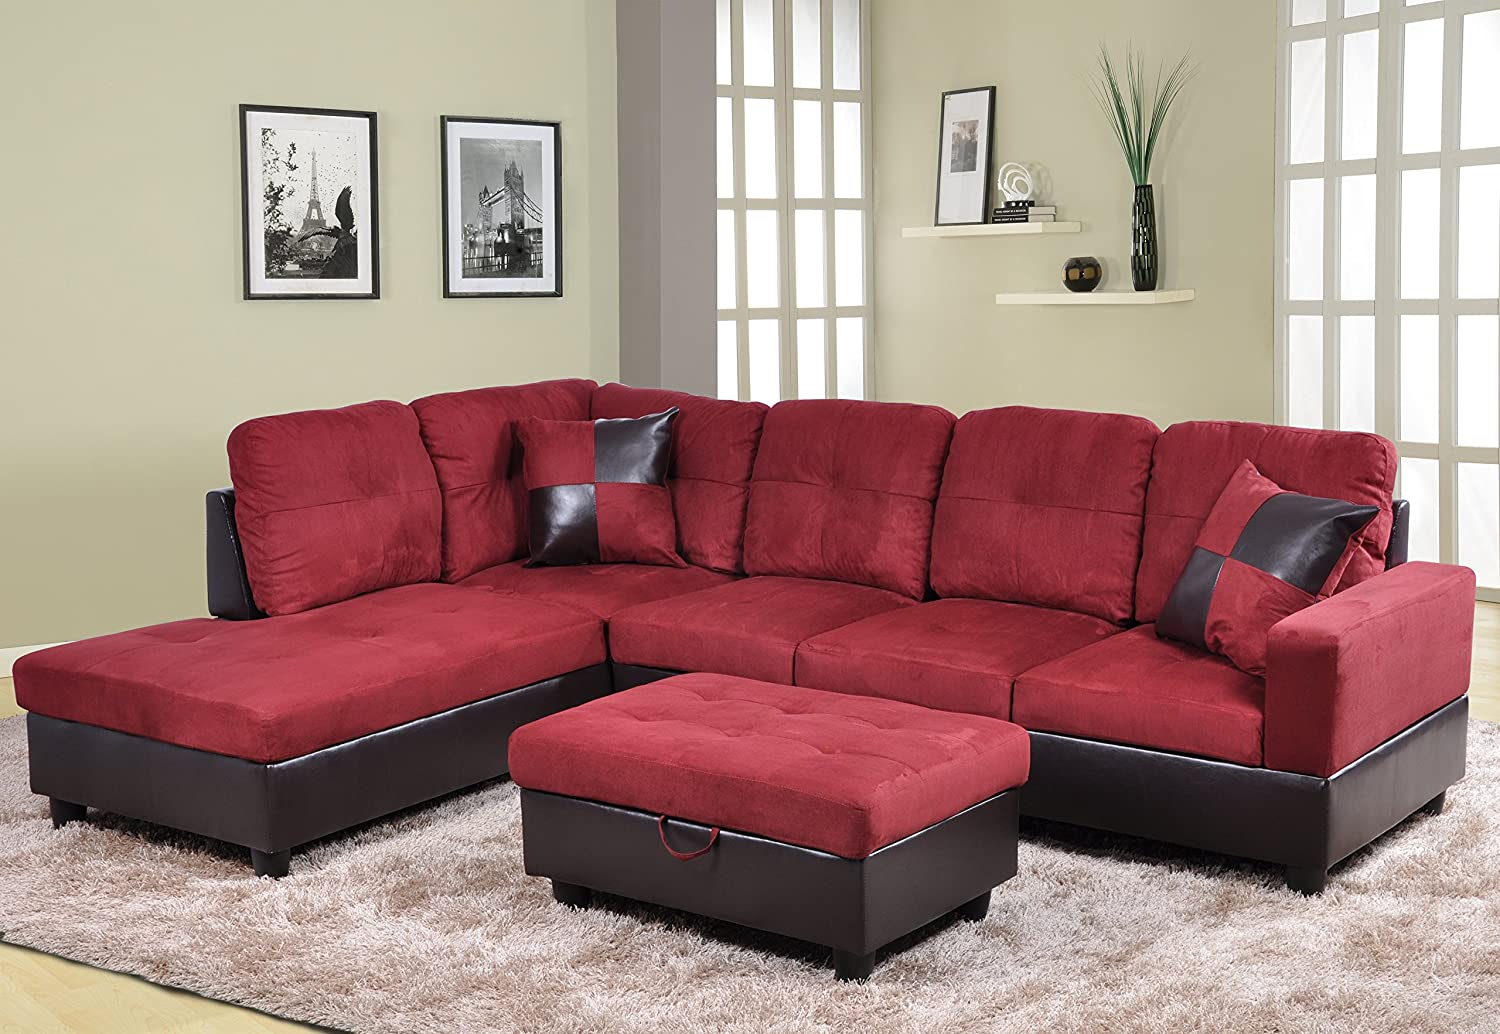 your living reclining costco for furniture futon sectionals cheap fill room sofas home leather modern with sectional comfy emerald decorating sofa ideas genuine co